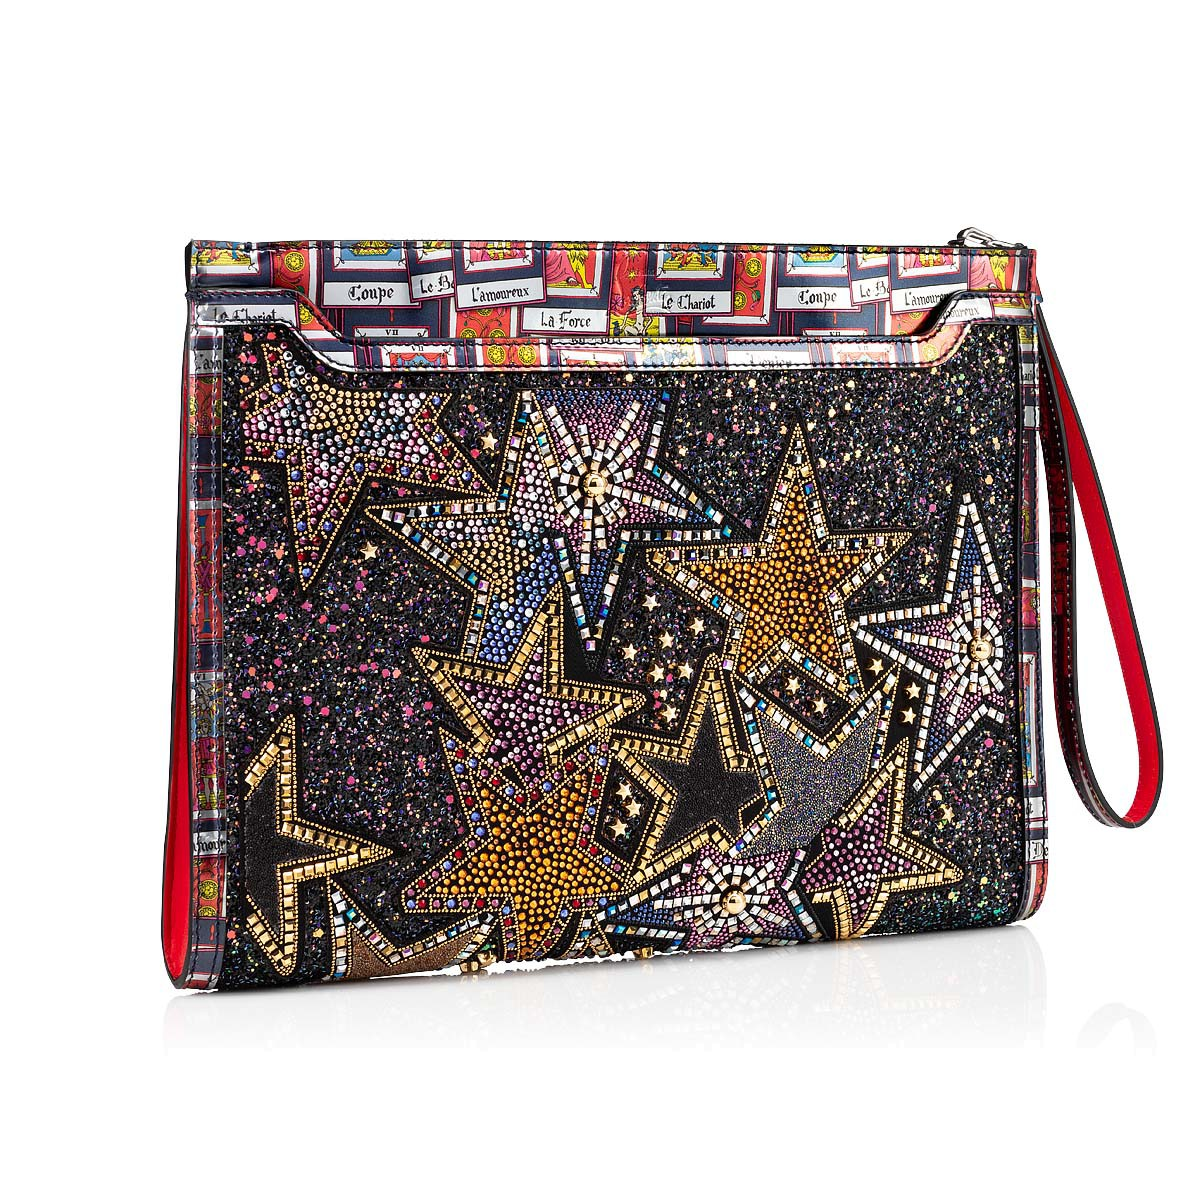 Bags - Skypouch - Christian Louboutin